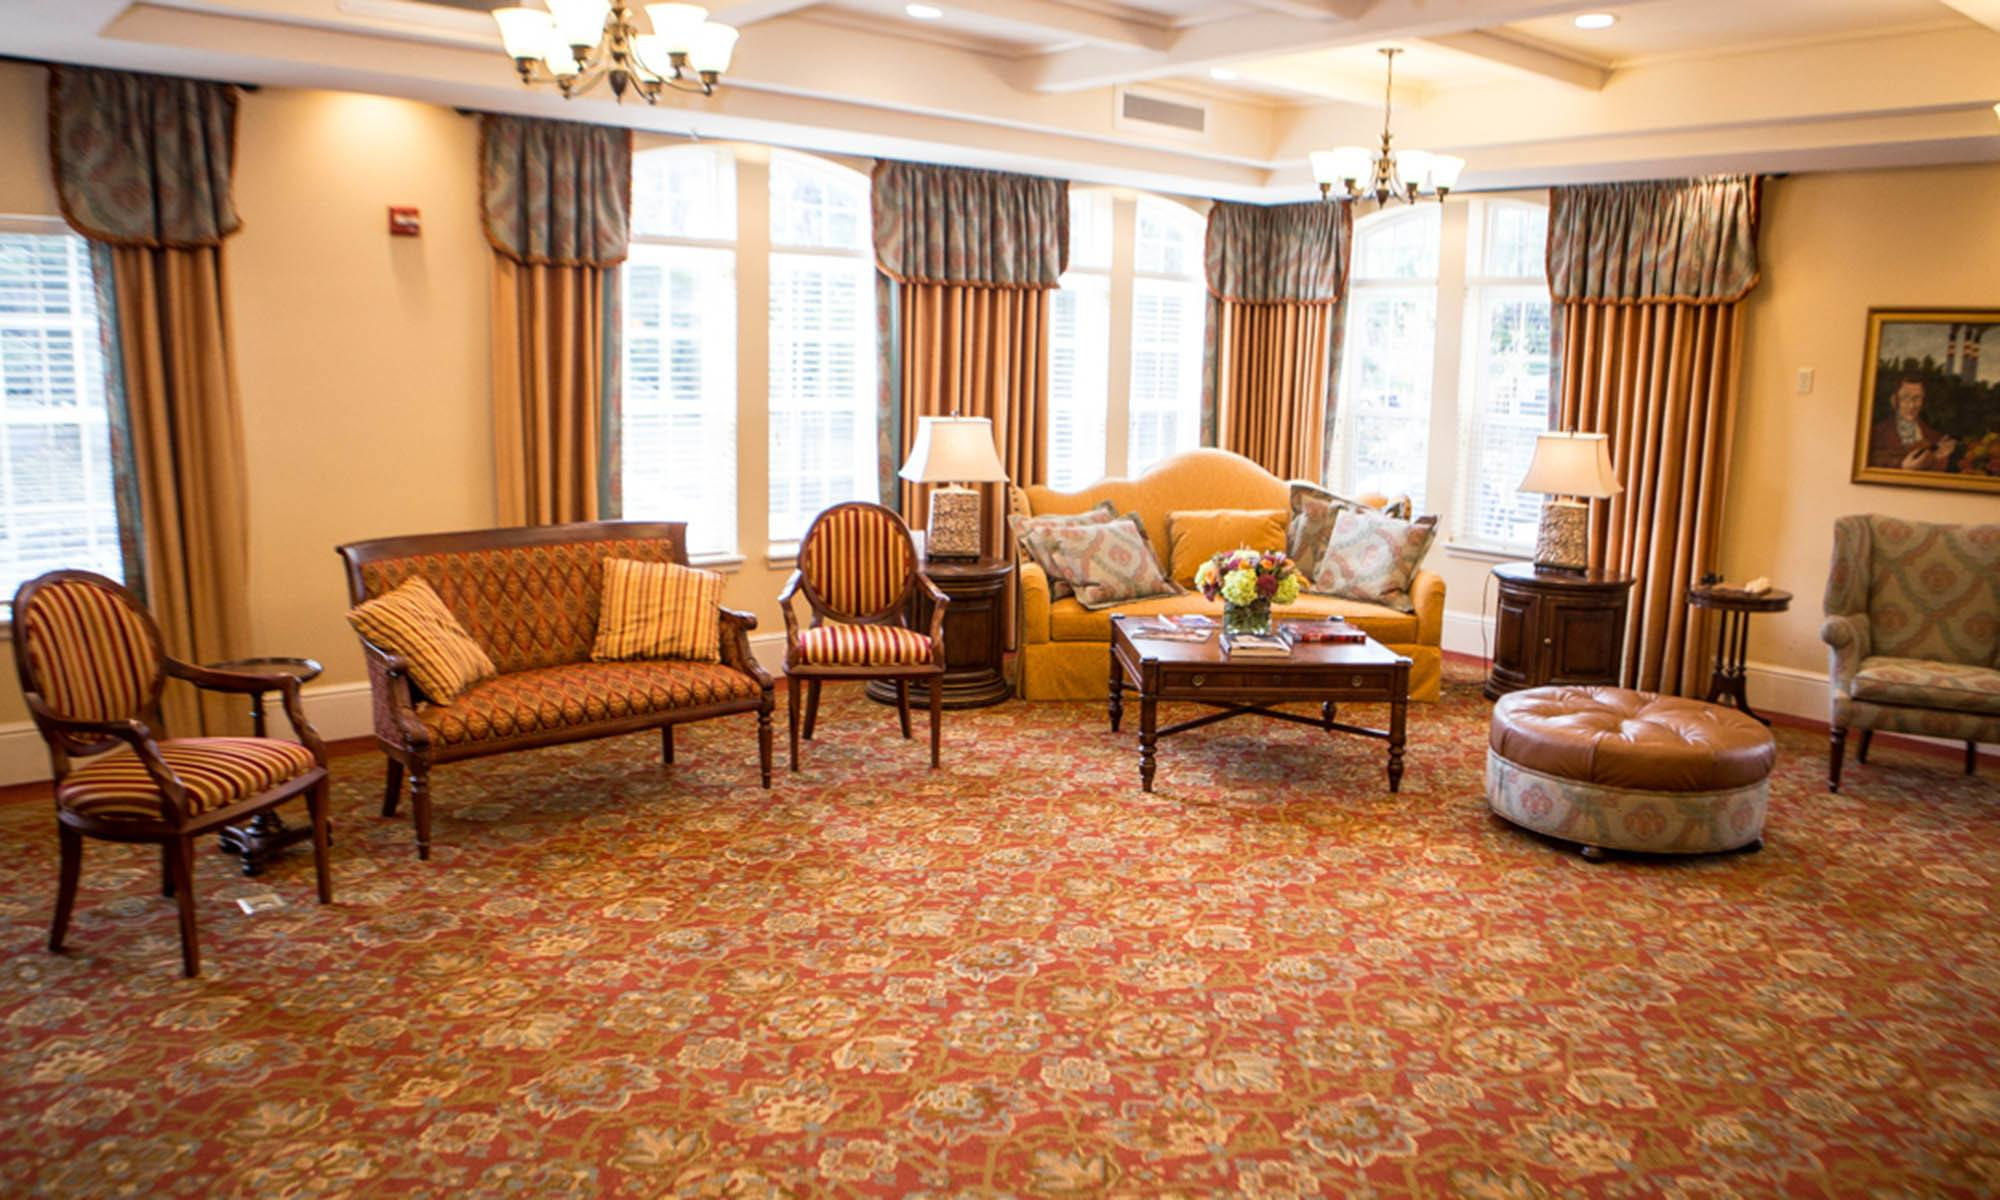 Common room at the senior living community in Bala Cynwyd